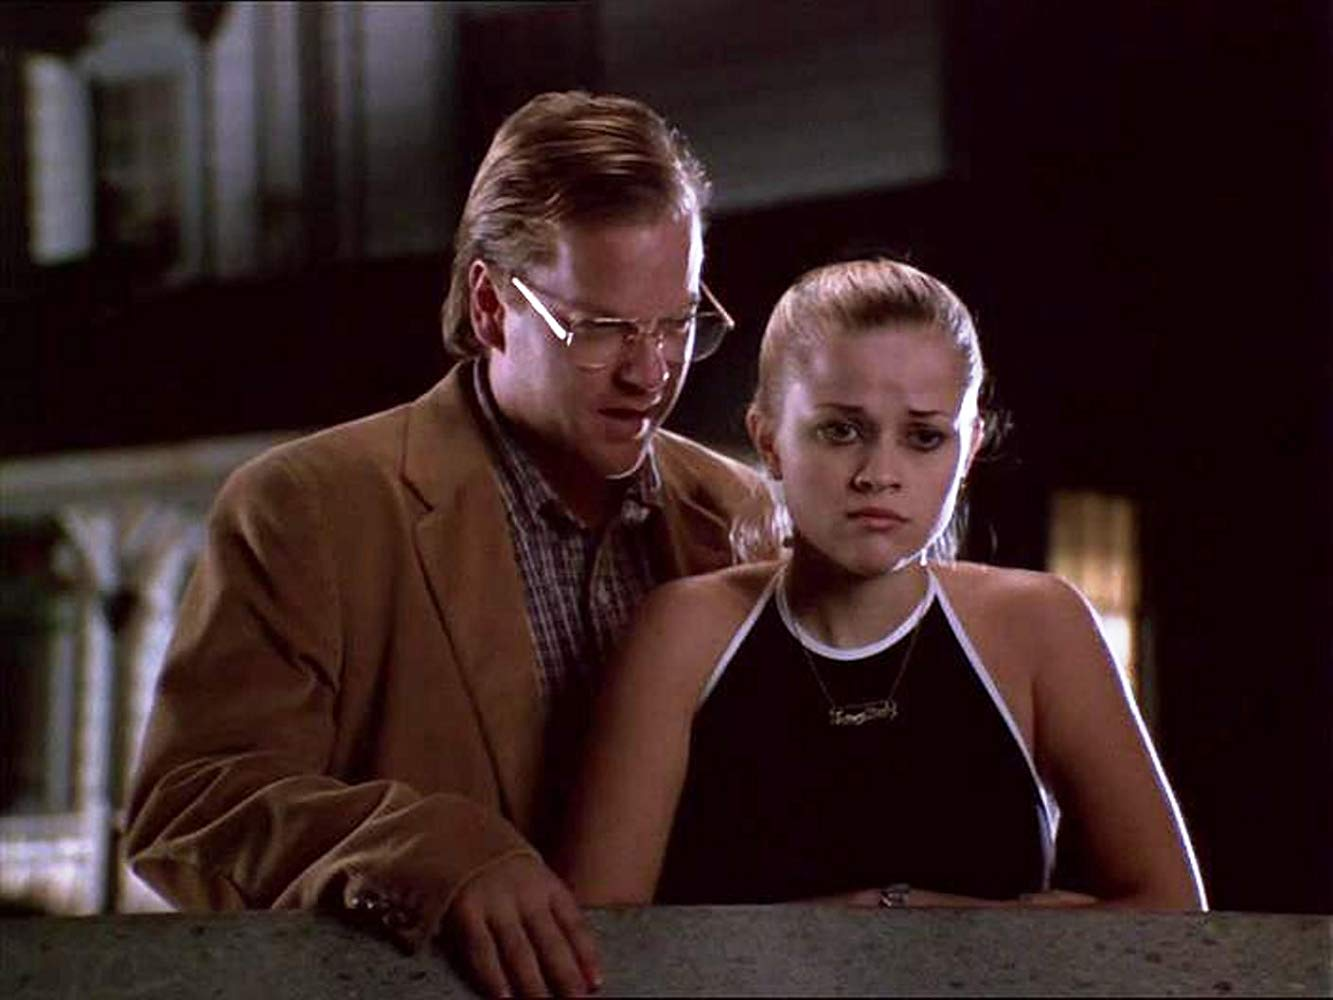 Reese Witherspoon menaced by the Big Bad Wolf, Kiefer Sutherland's serial killer Bob Wolverton in Freeway (1996)